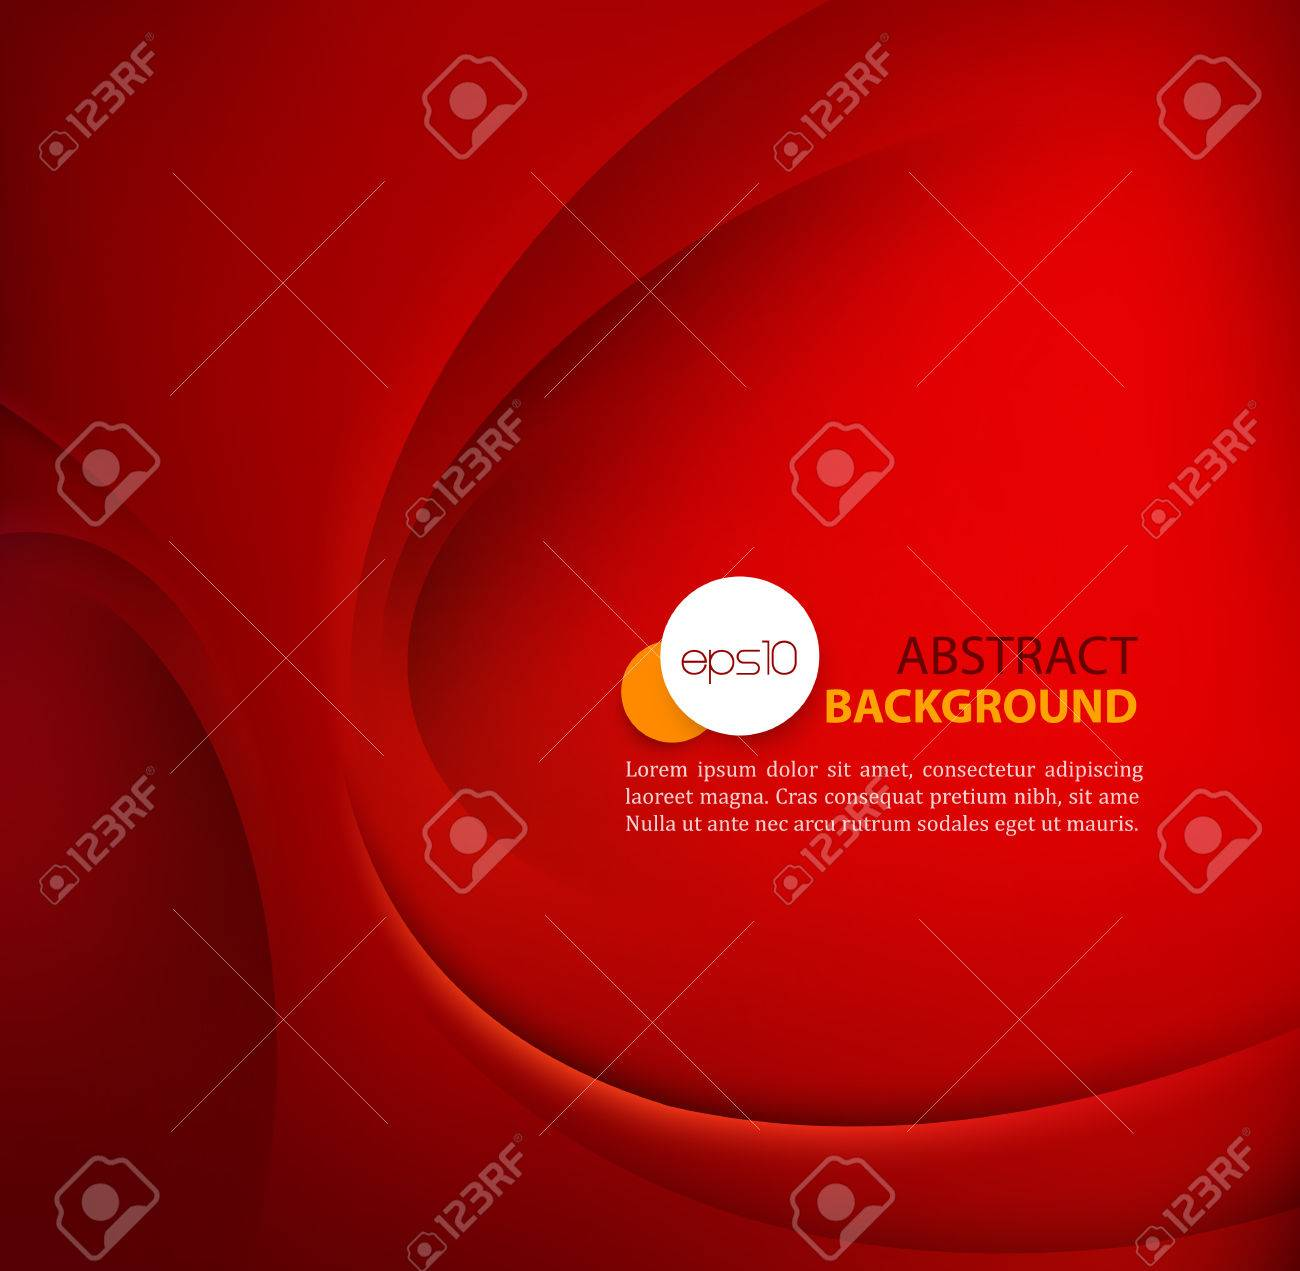 Red vector Template Abstract background with curves lines and shadow. - 53408578